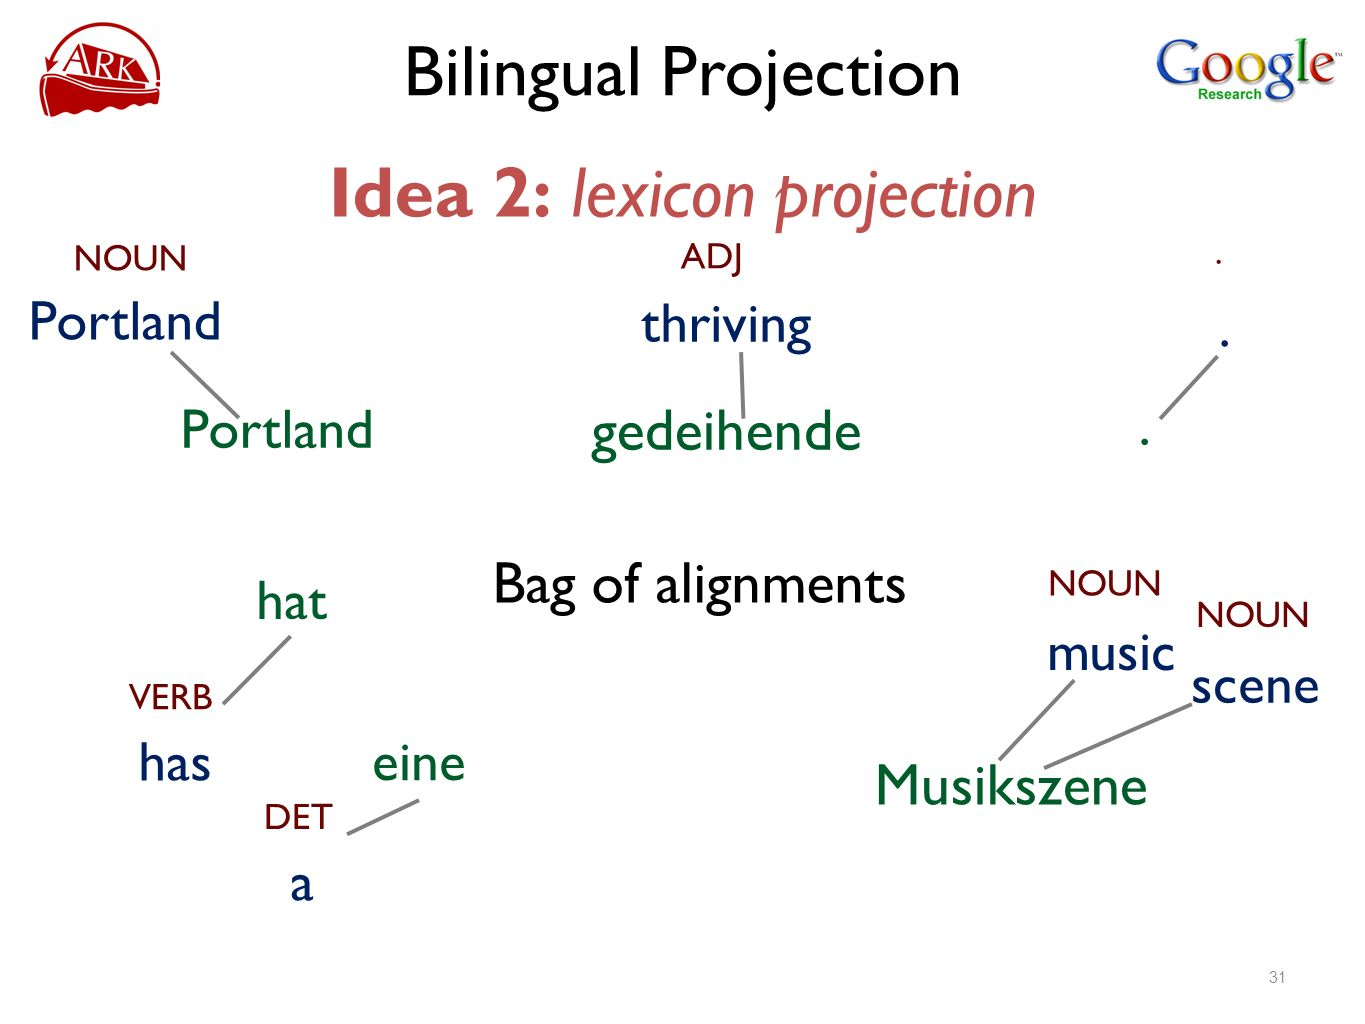 Bilingual Projection Idea 2: lexicon projection NOUN Portland ADJ thriving gedeihende VERB has hat DET a eine NOUN scene Musikszene NOUN music...